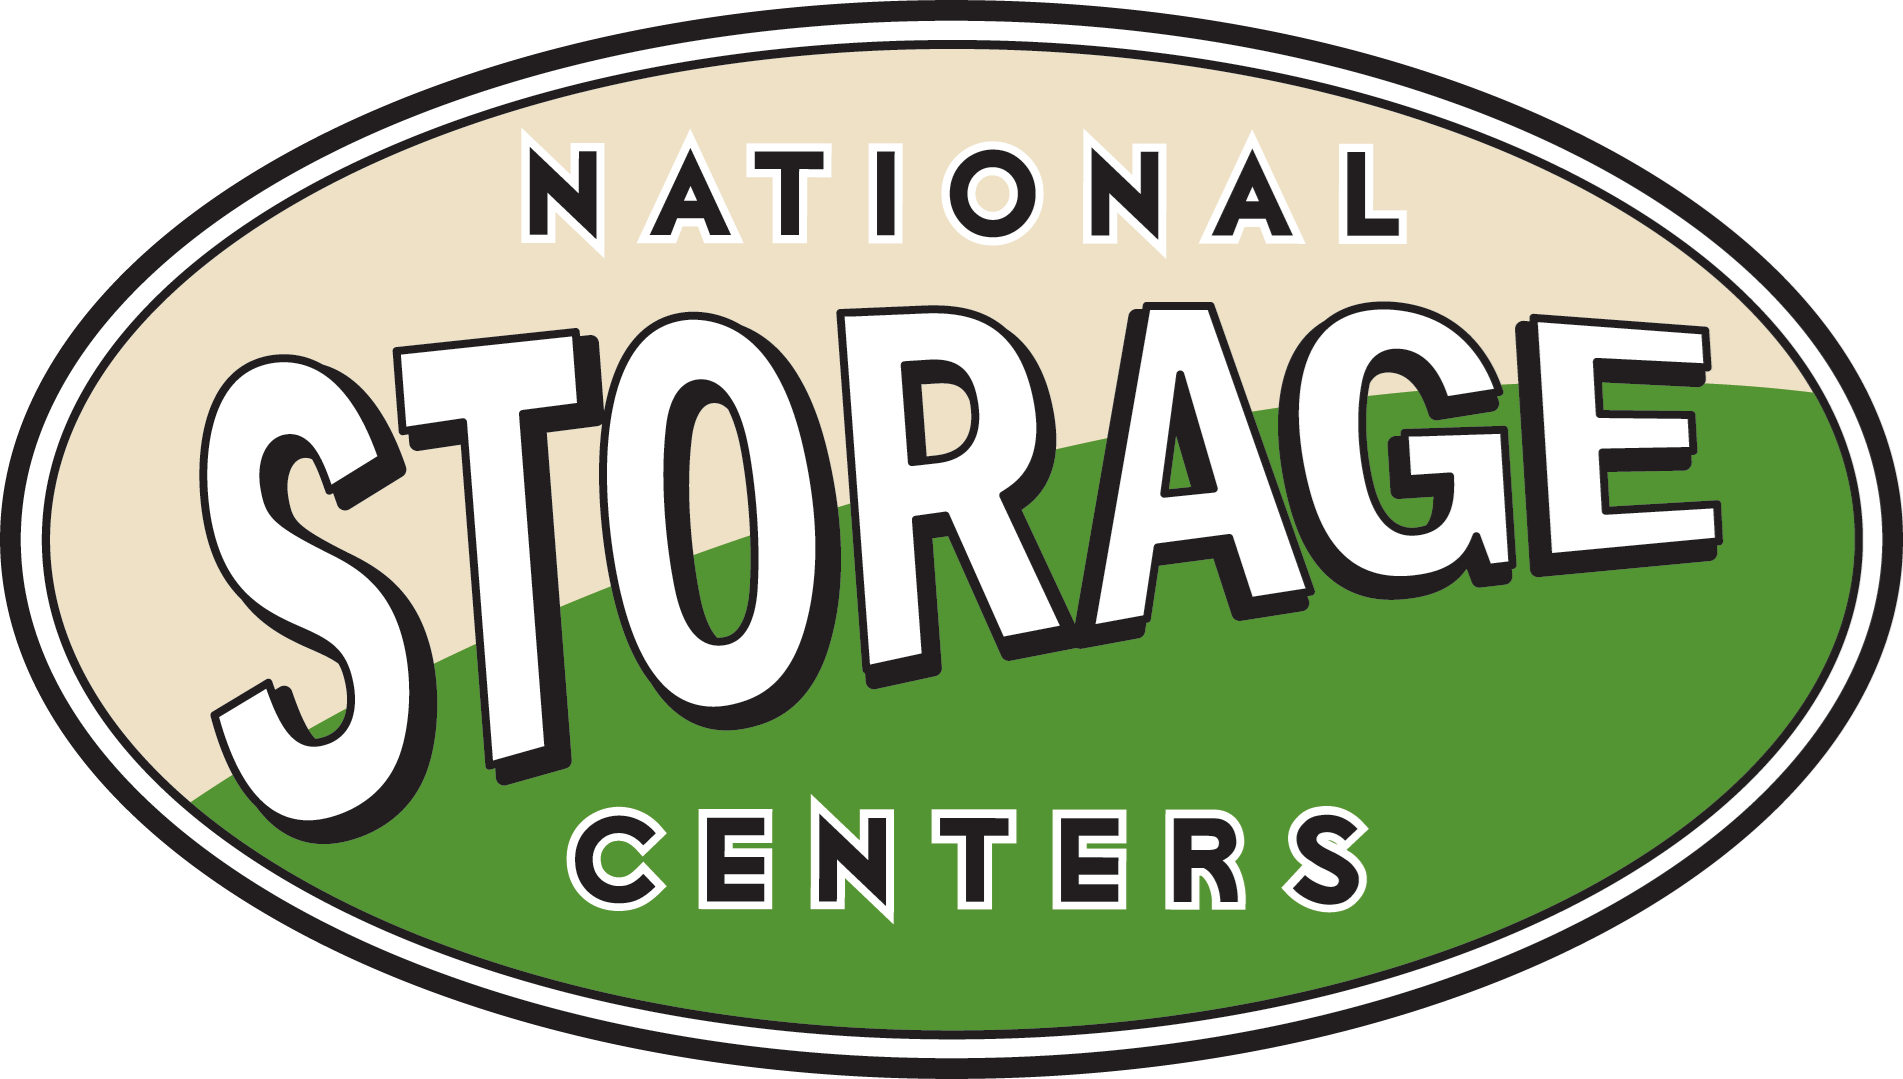 National Storage Centers